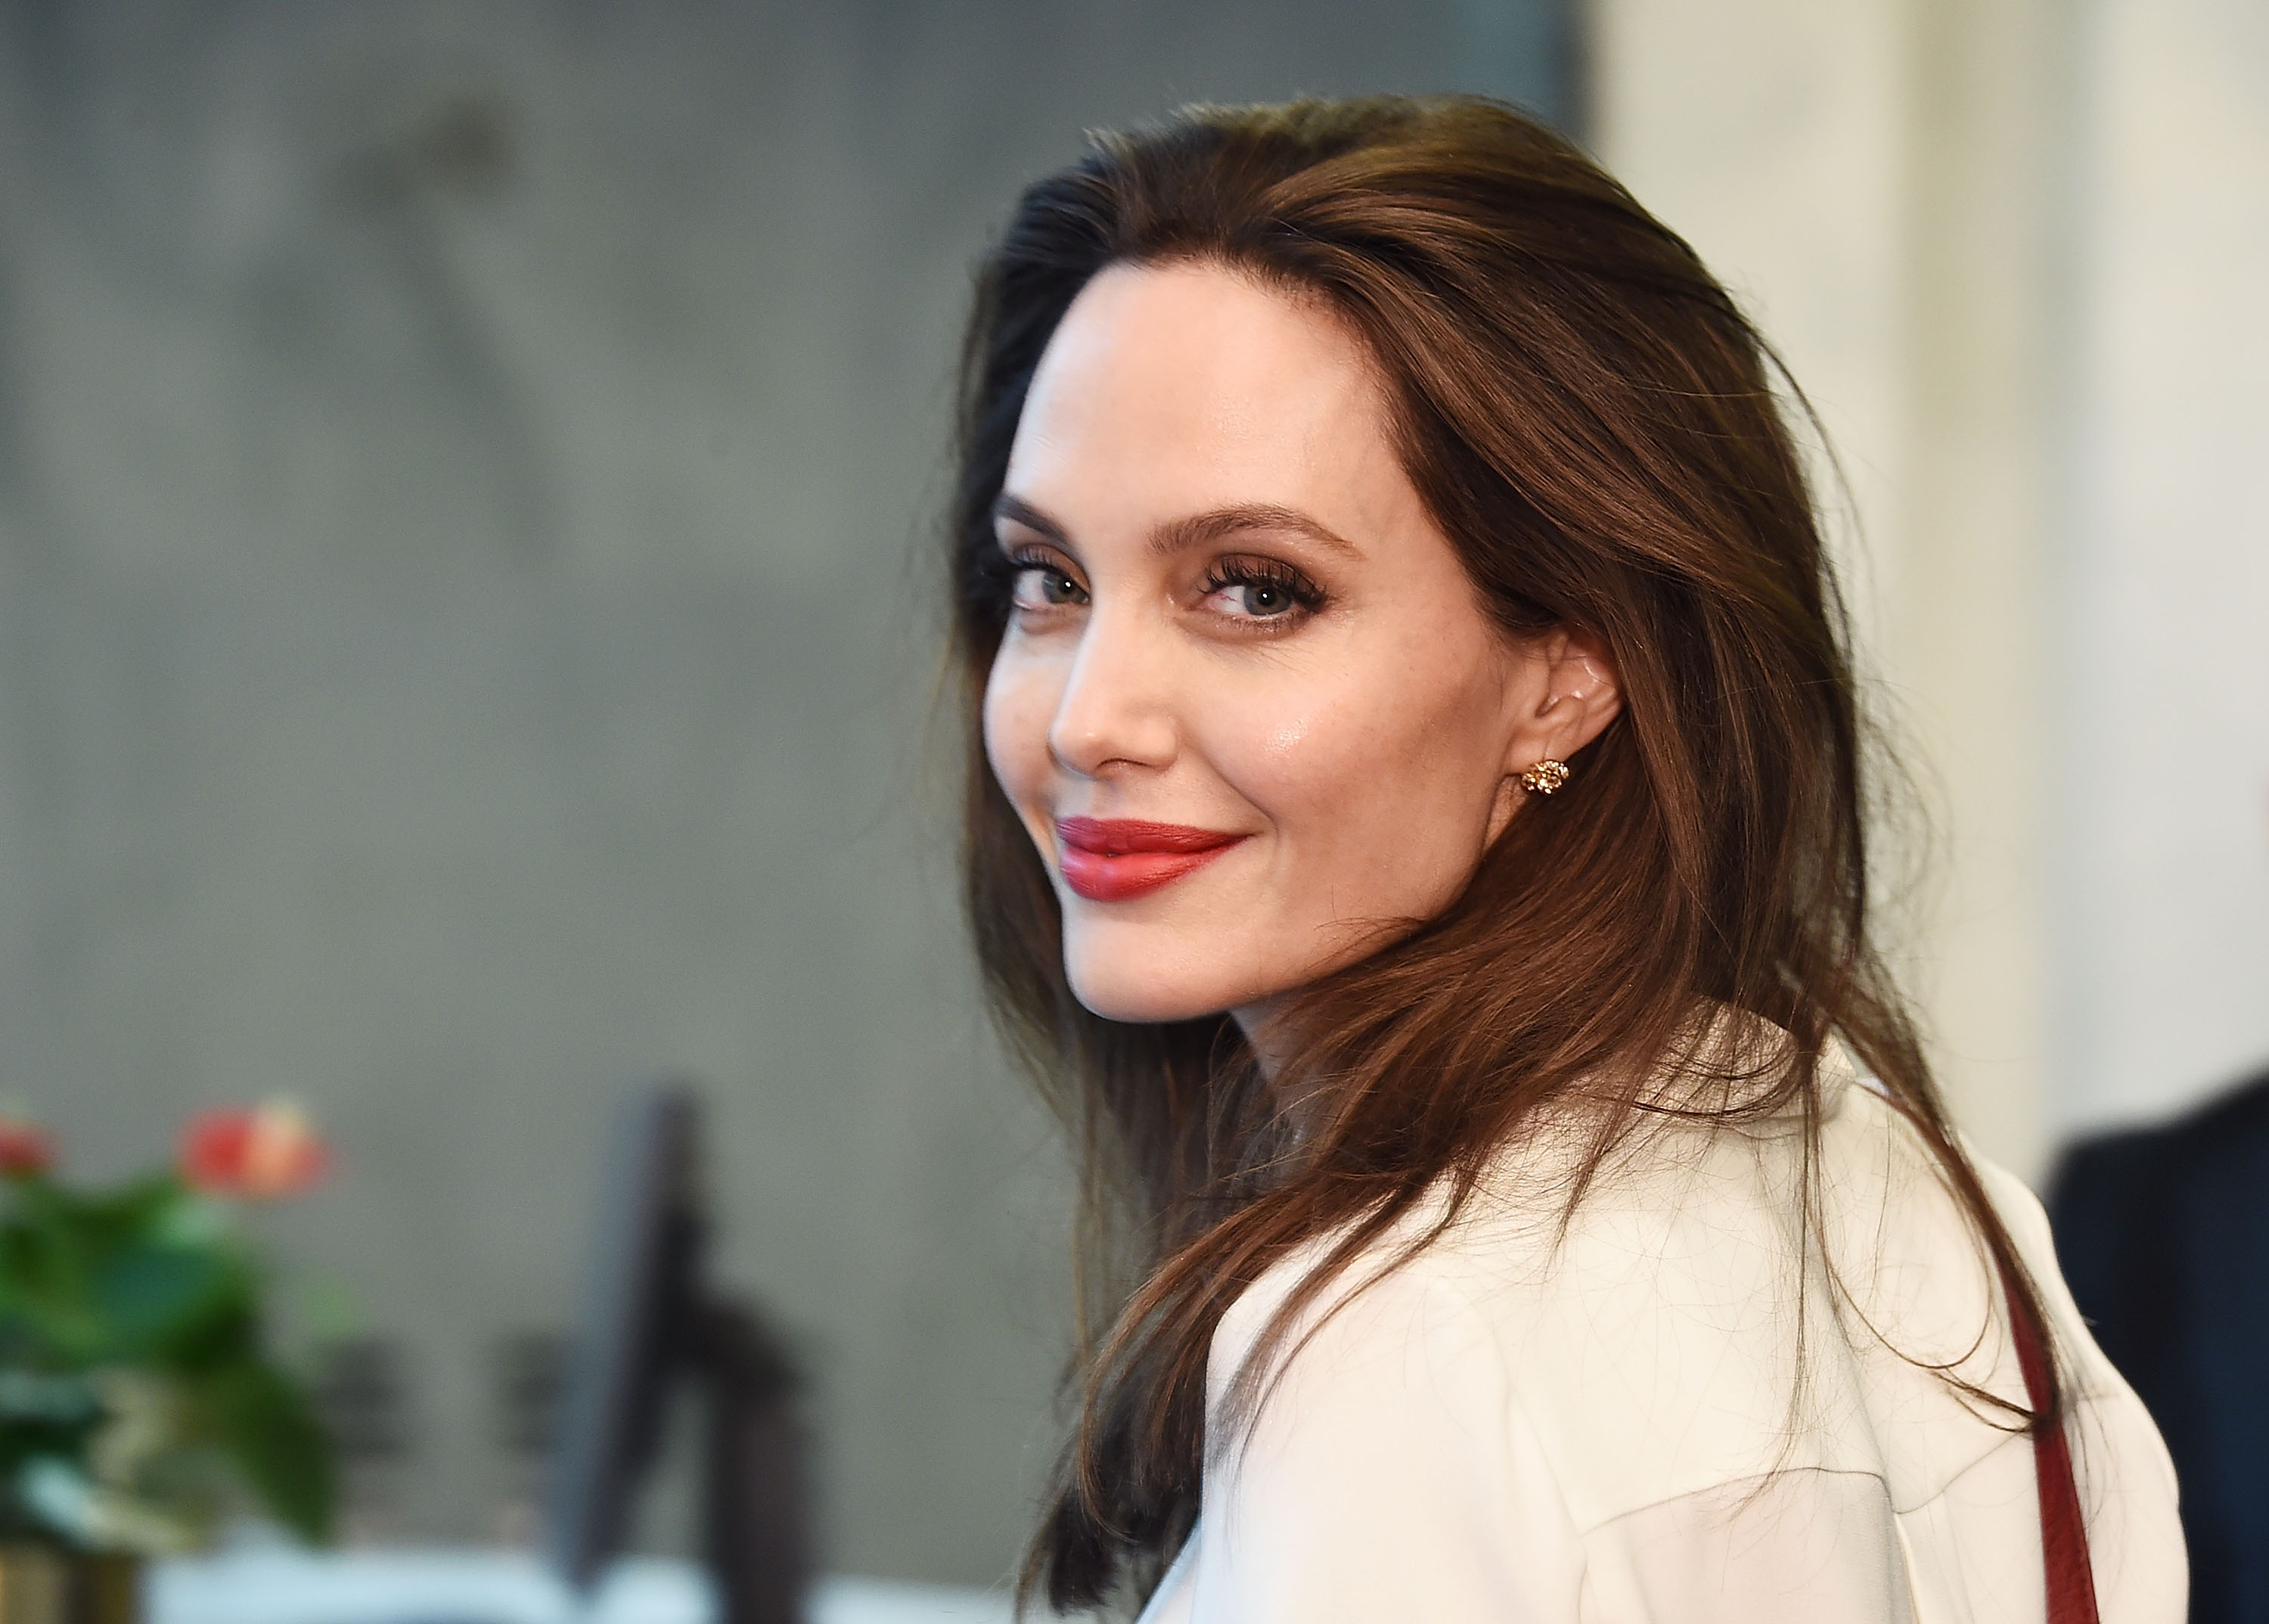 Angelina Jolie Has a New Tattoo and Pays Another Visit to Jonny Lee Miller's Apartment Building